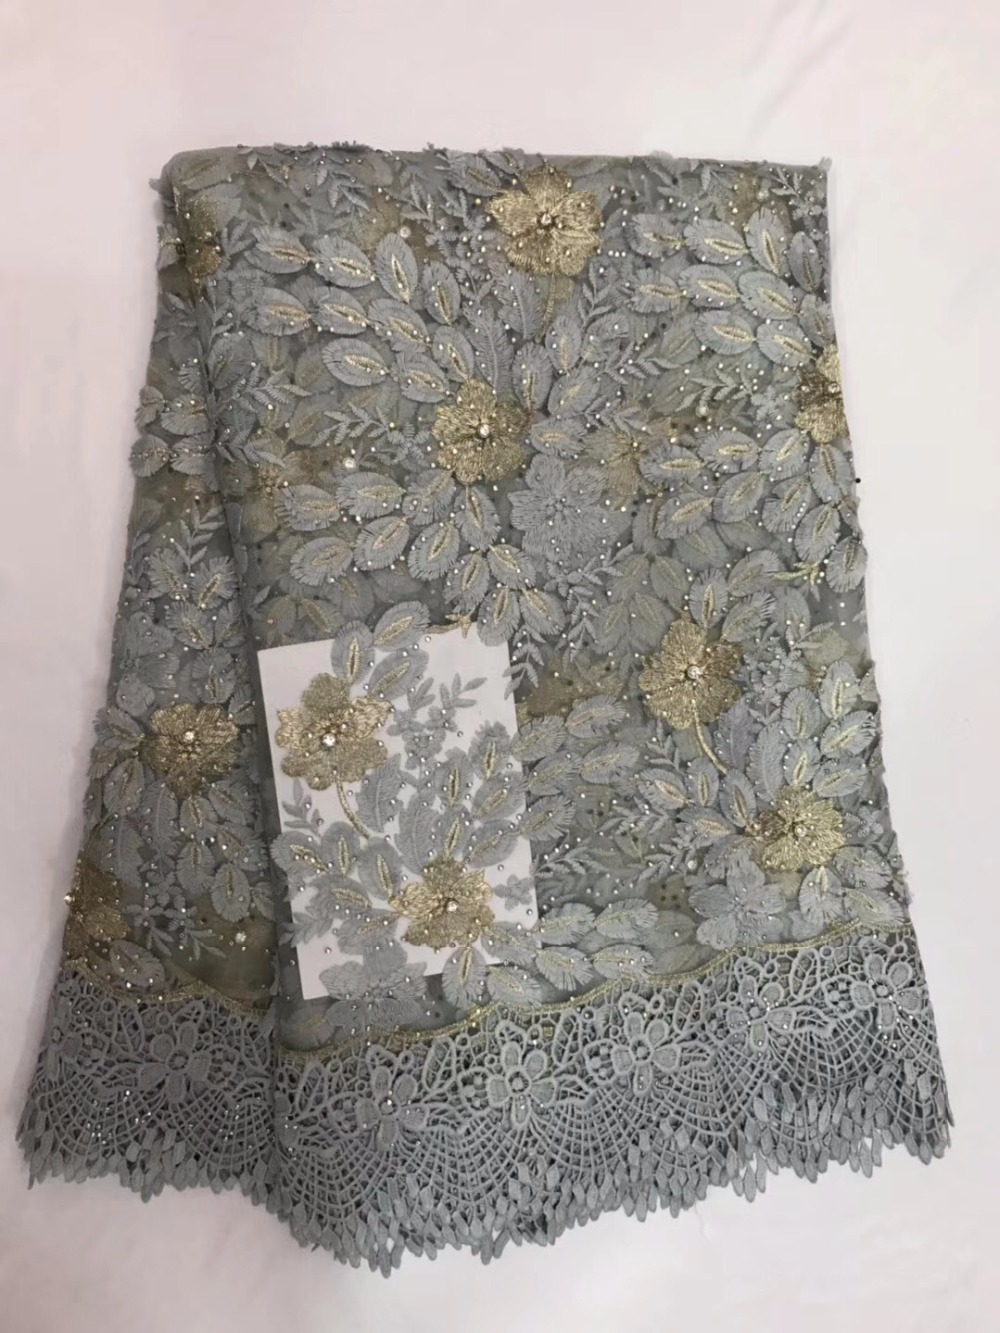 High Quality Imported Wholesale 100%Polyester African Grey Tulle Lace French Net stones Lace Fabric For WeddingHigh Quality Imported Wholesale 100%Polyester African Grey Tulle Lace French Net stones Lace Fabric For Wedding